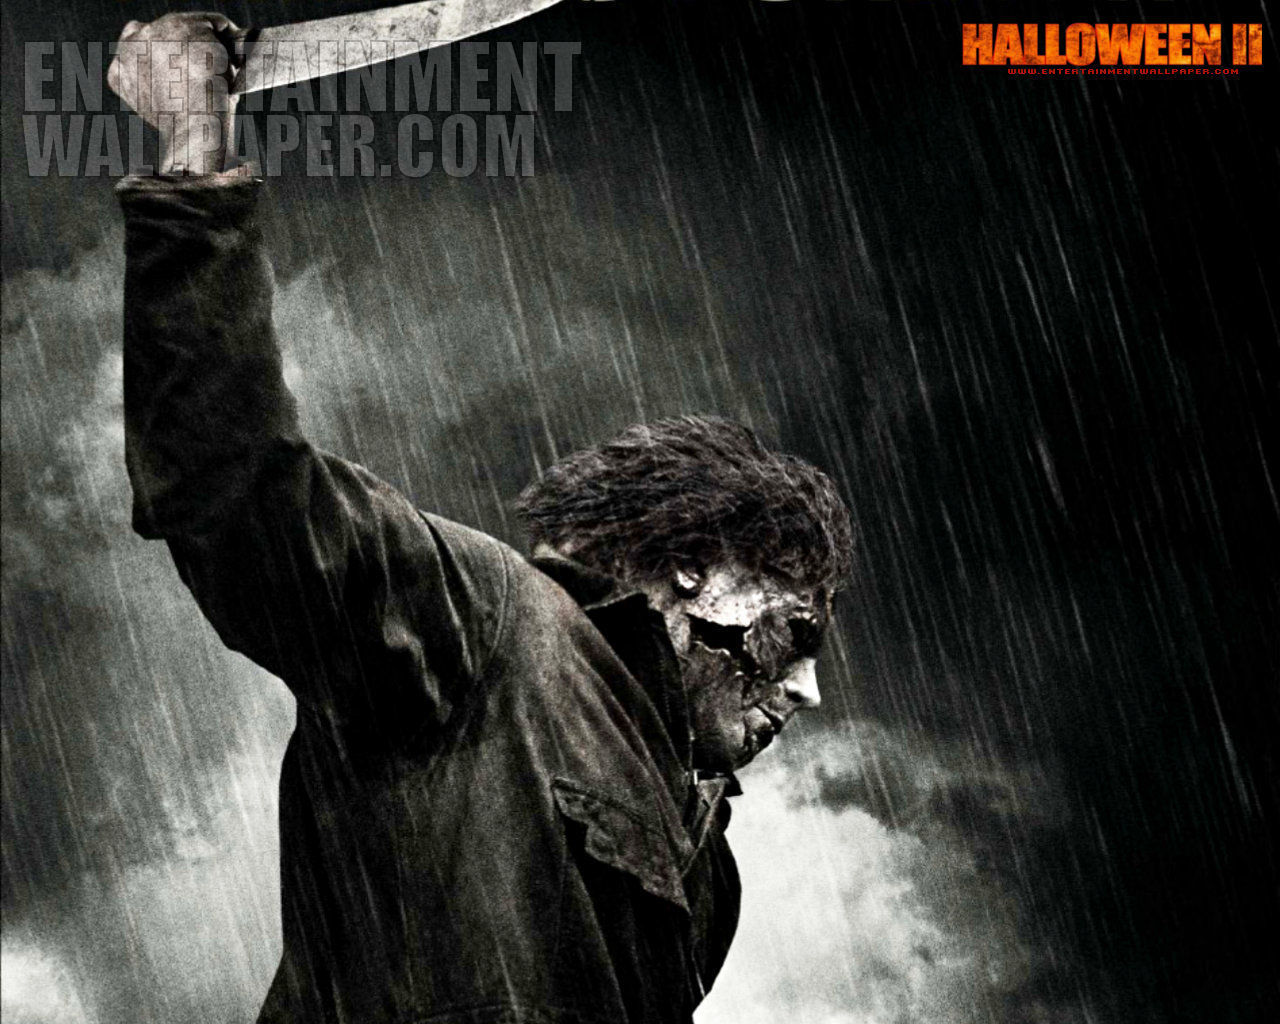 horror movies images halloween 2 (2009) wallpapers hd wallpaper and